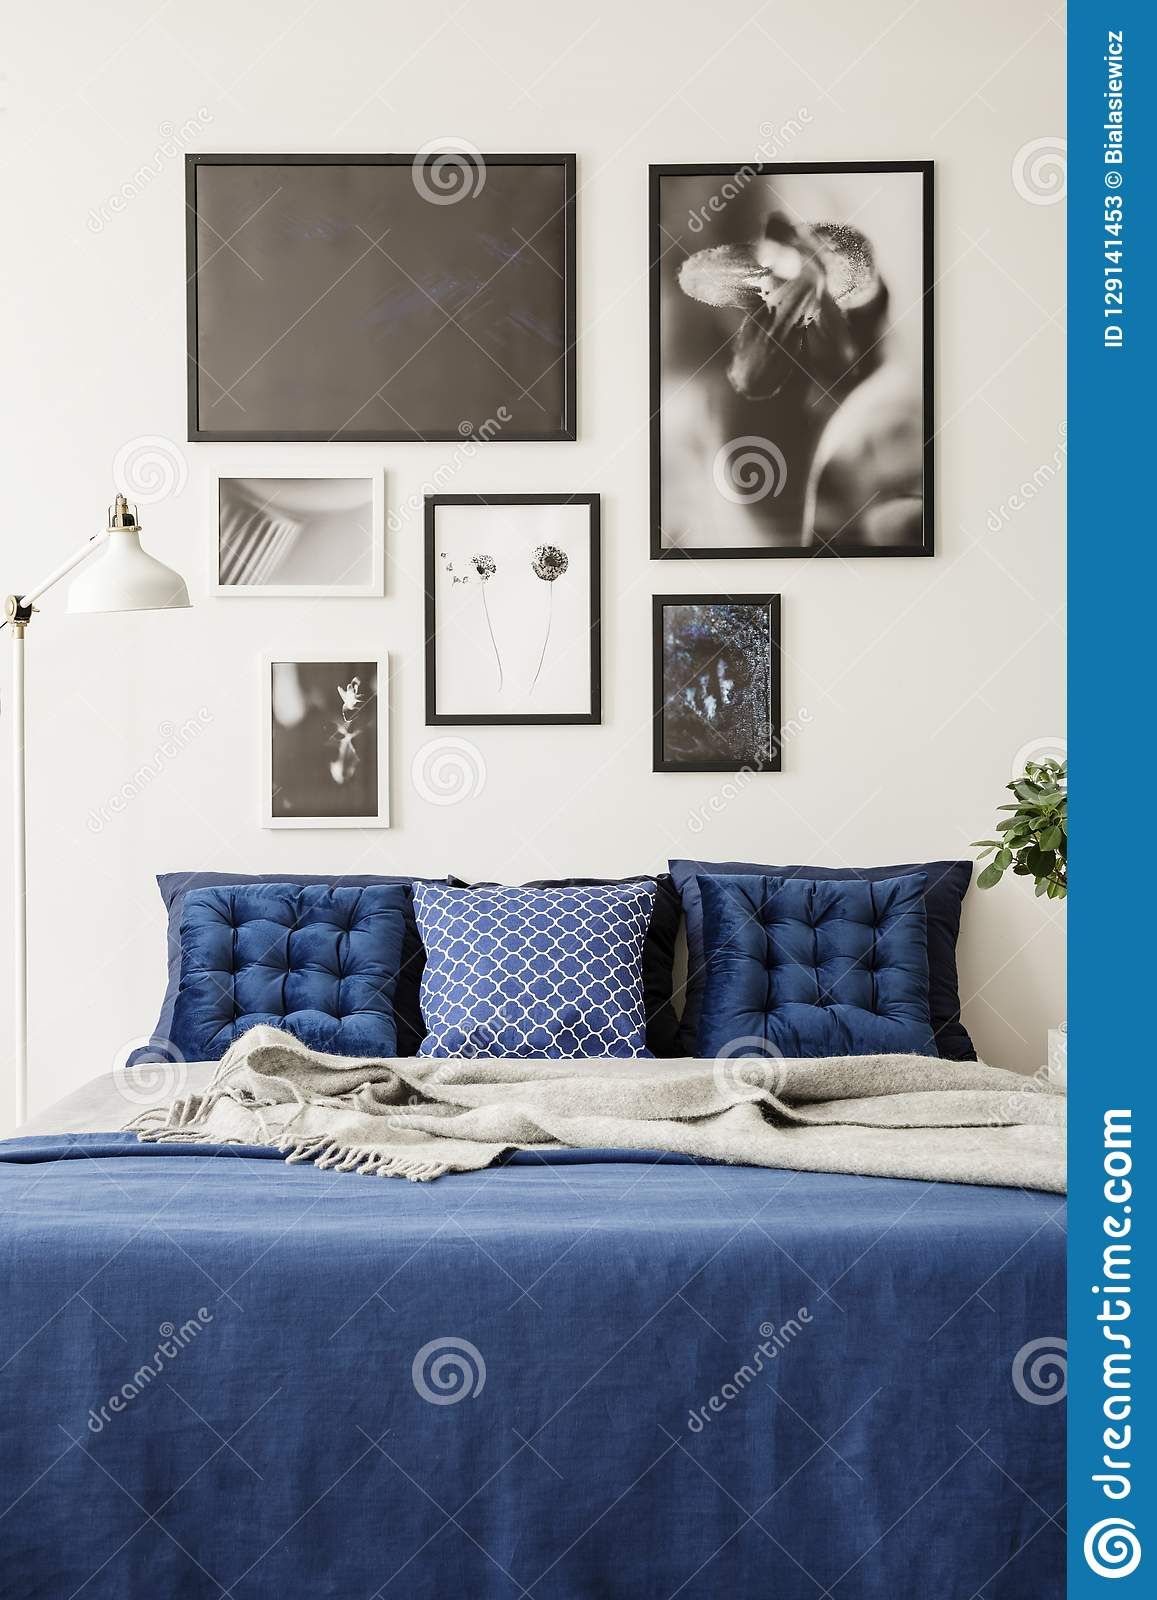 Mock Up Picture Gallery On A White Wall Above A Large Bed With Navy